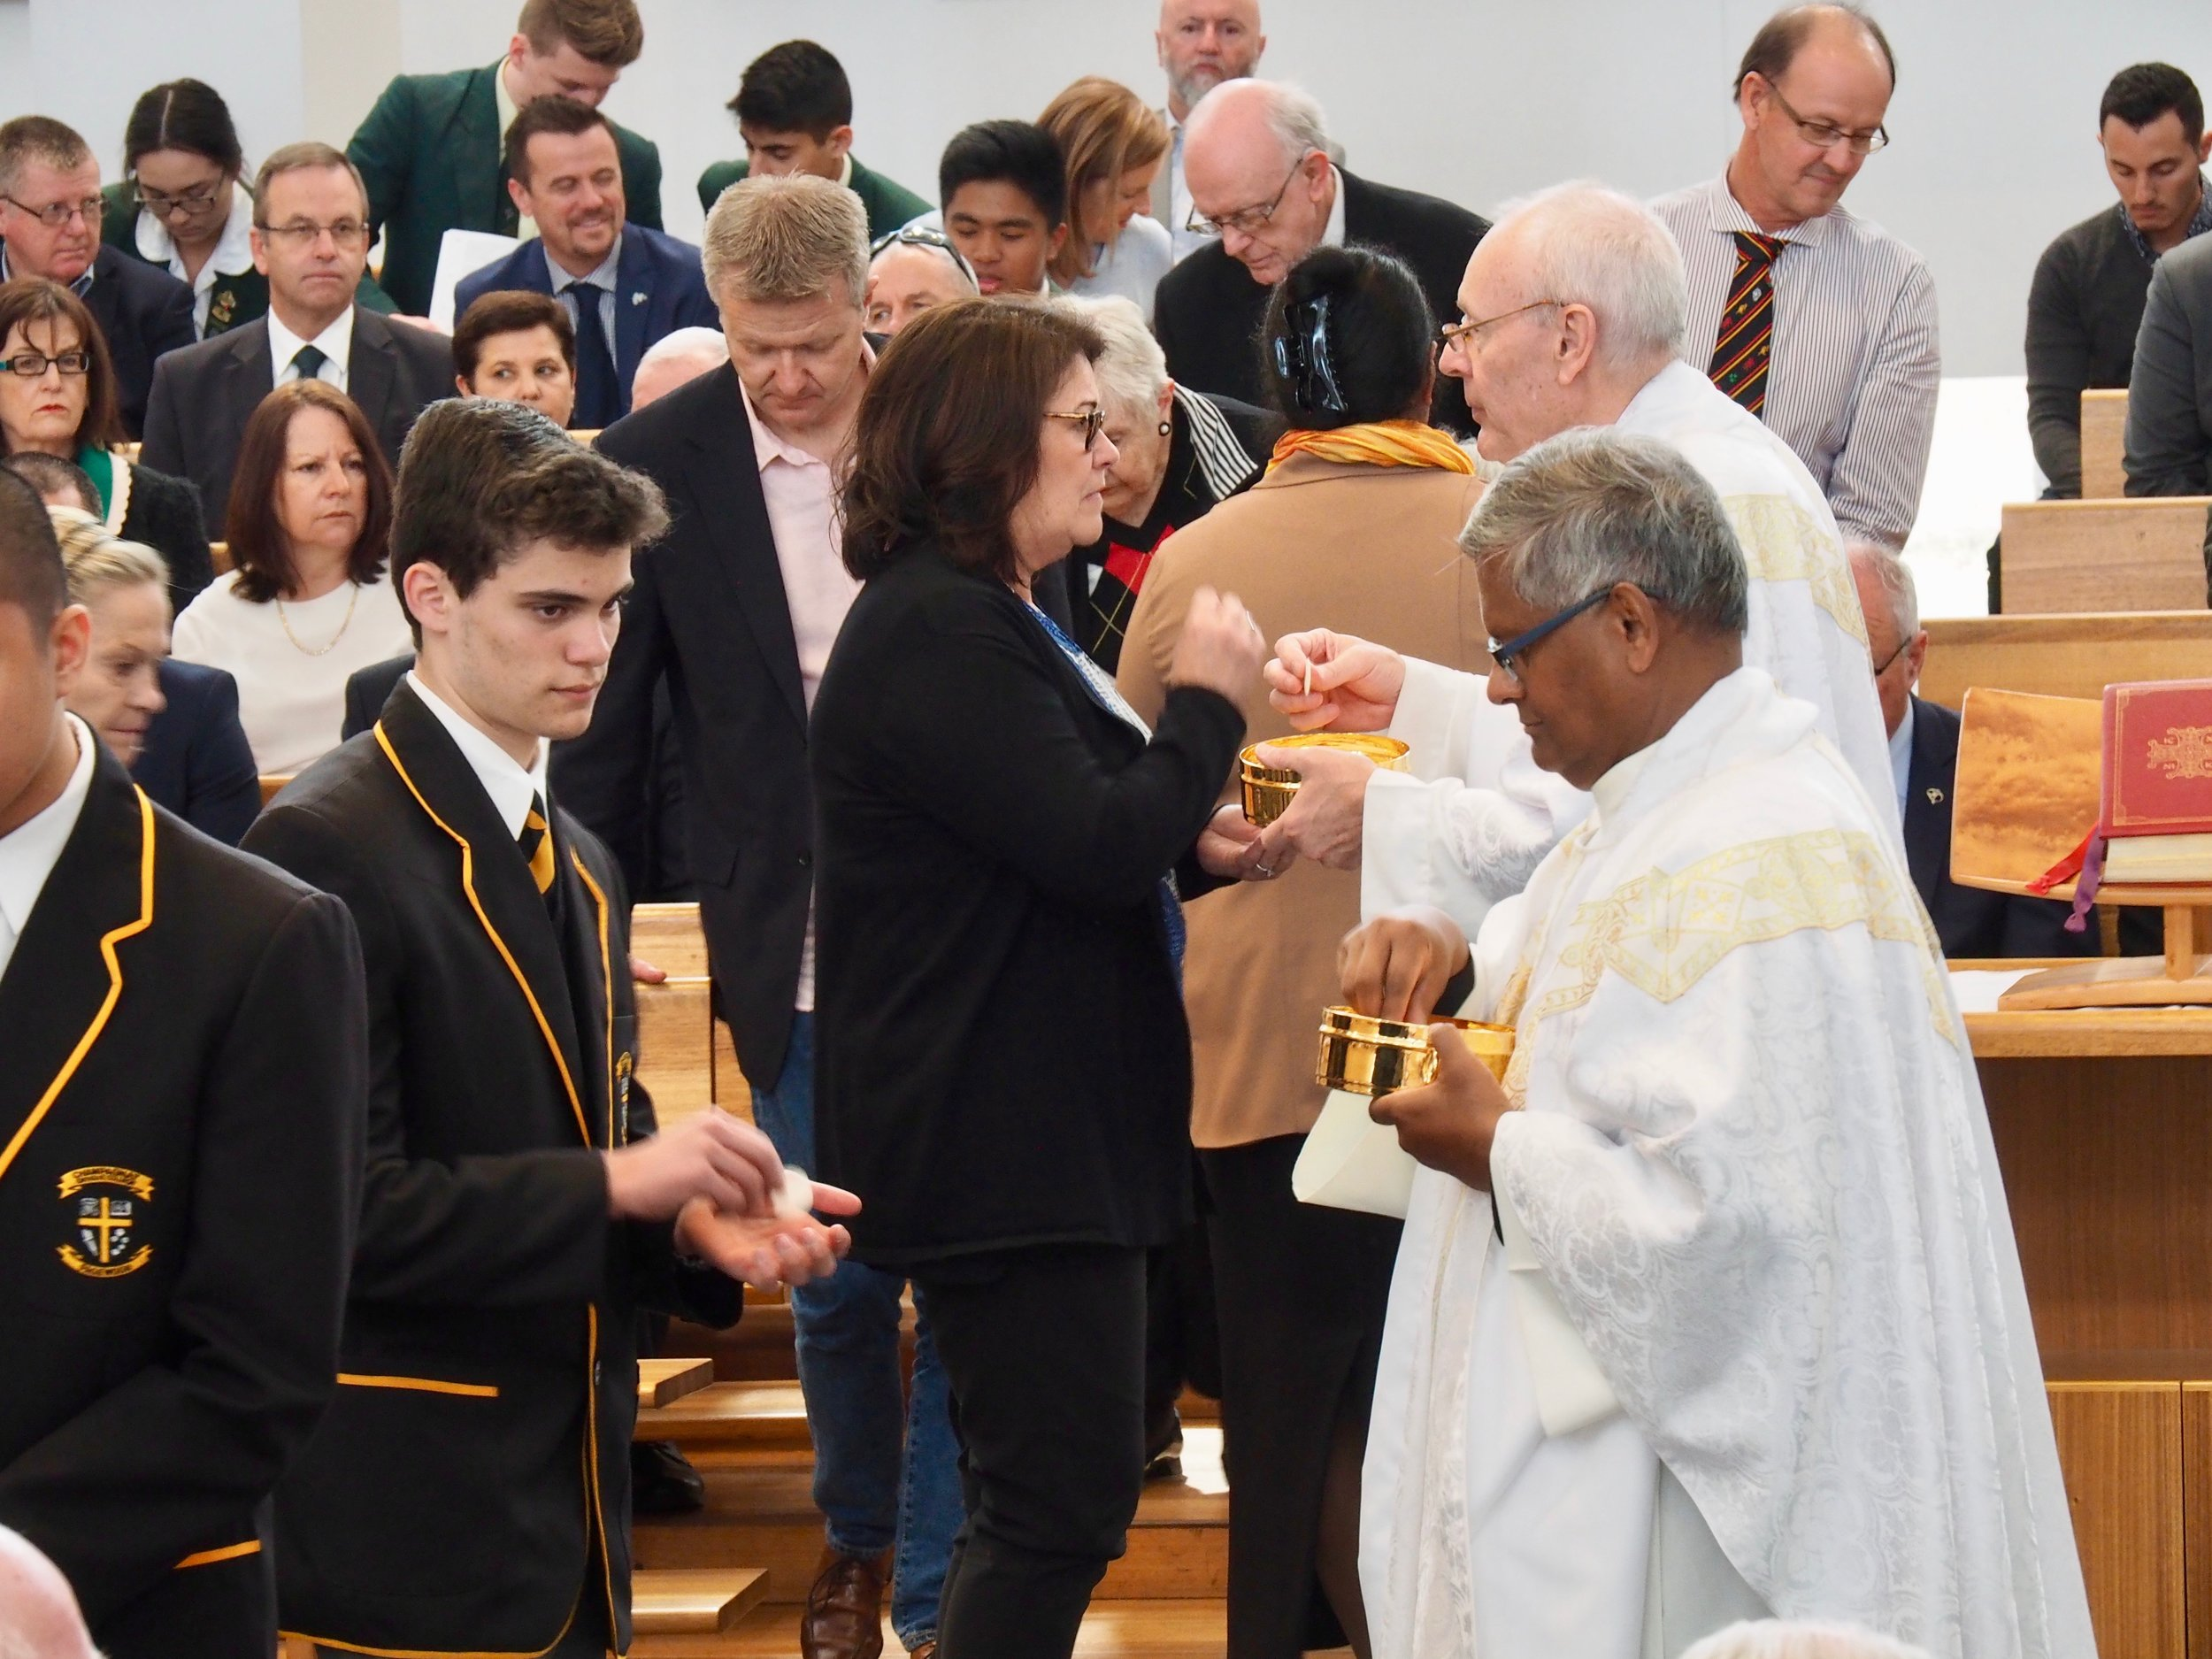 Bicentenary Mass Sydney 12 Aug 2017 Photos by Paul Harris 00061.jpg